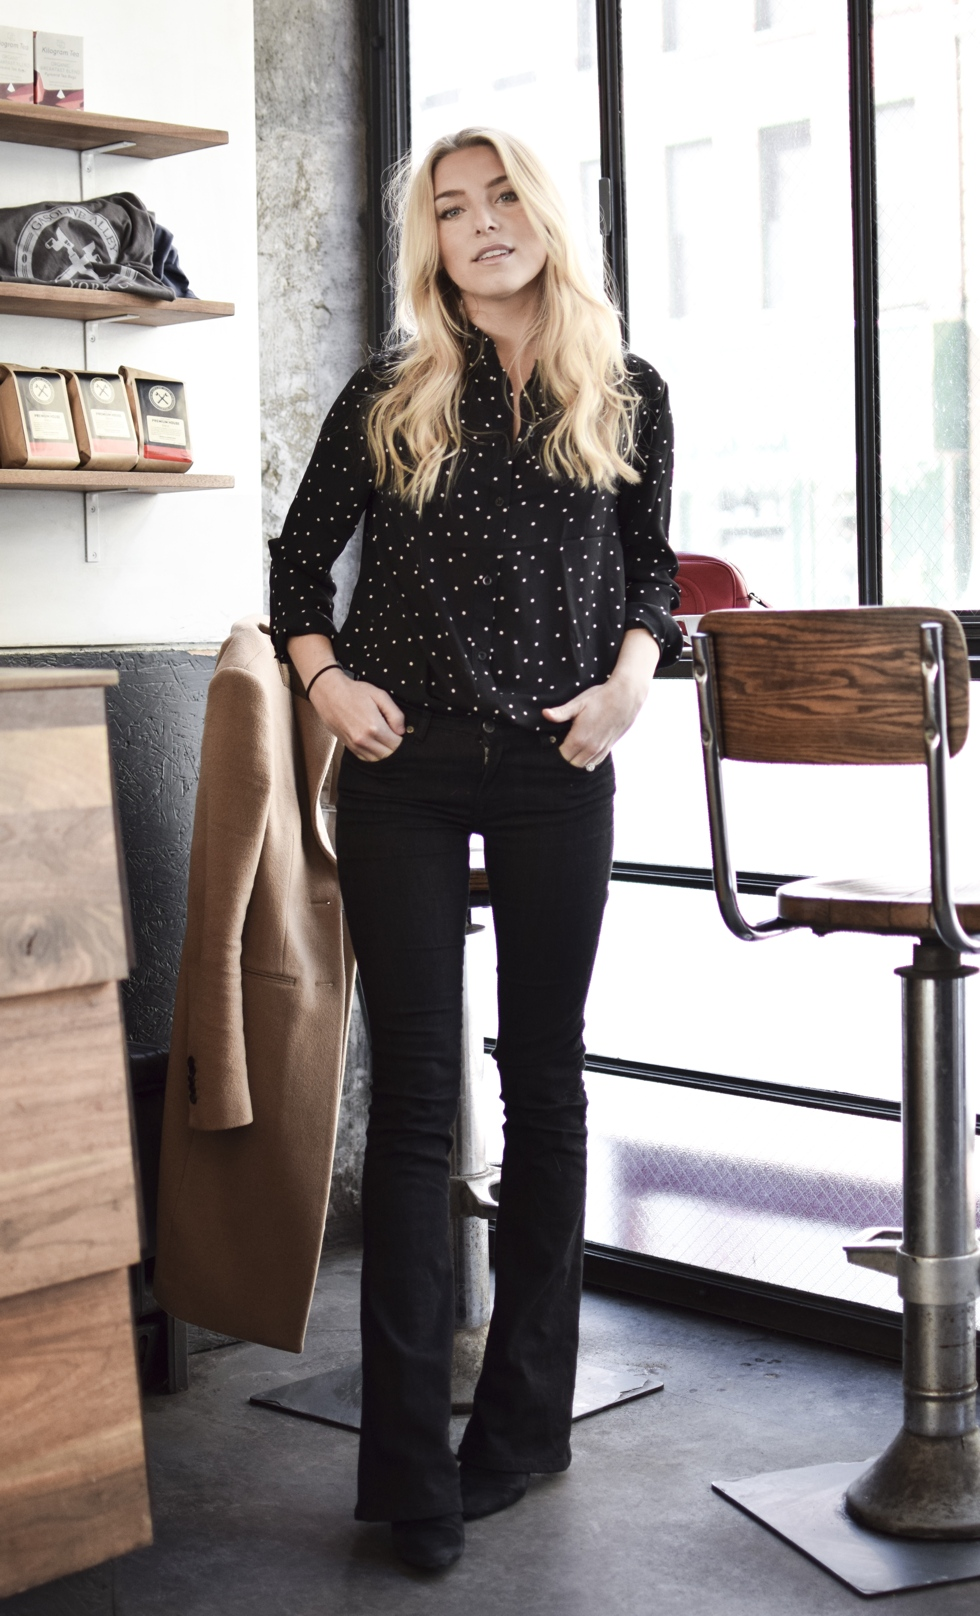 sanne_outfit_gasoline_alley_coffee_new_york_5